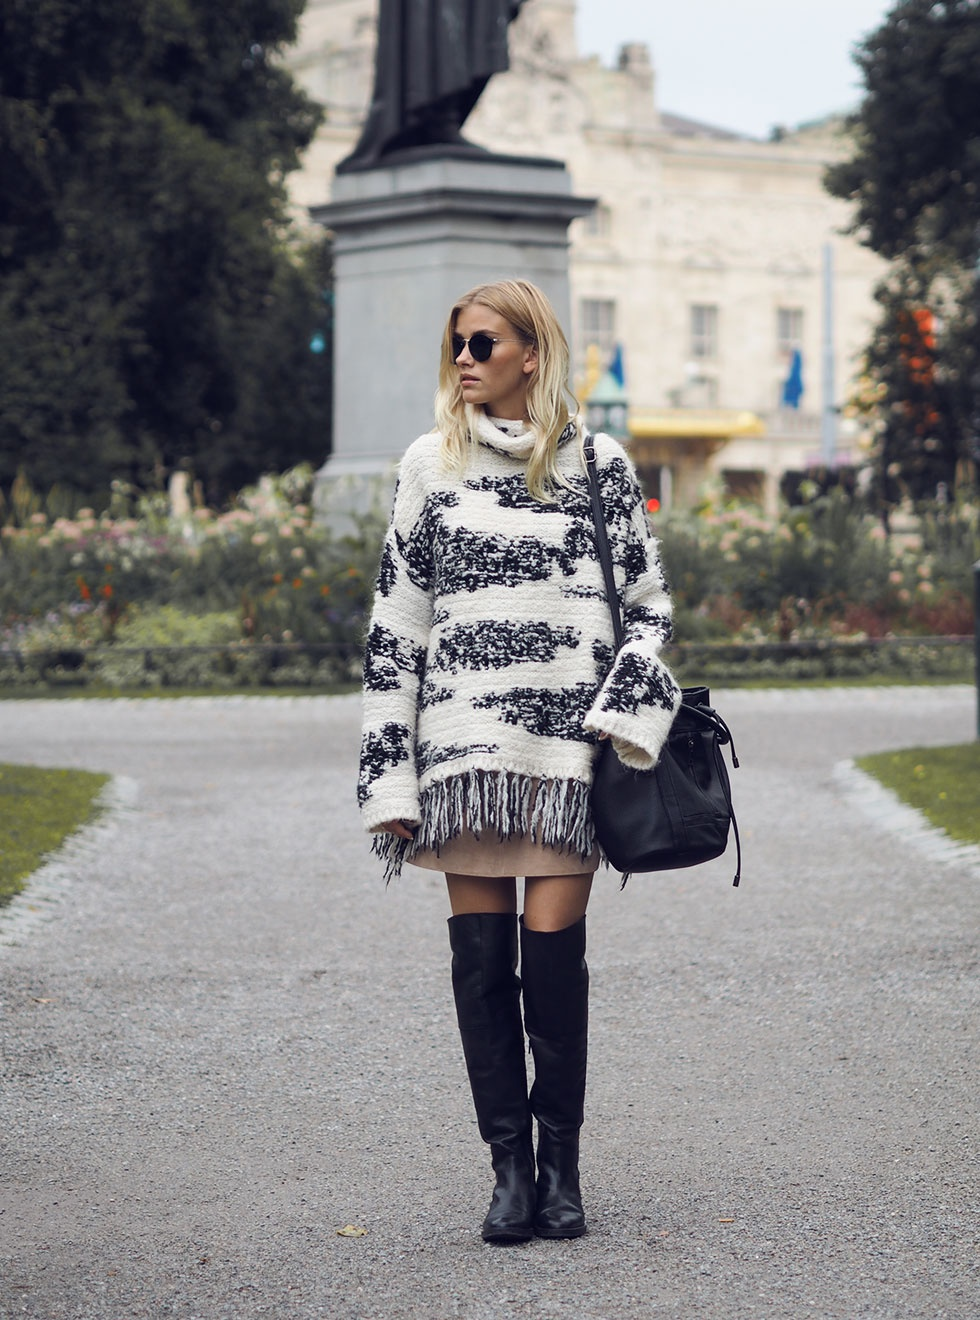 Elsa Ekman wears a chunky patterned knit jumper with her over the knee boots. Polo-Knit: Zara, Skirt: River Island, Shoes: Din Sko, Bag: Lindex, Sunnies: Ray Ban.